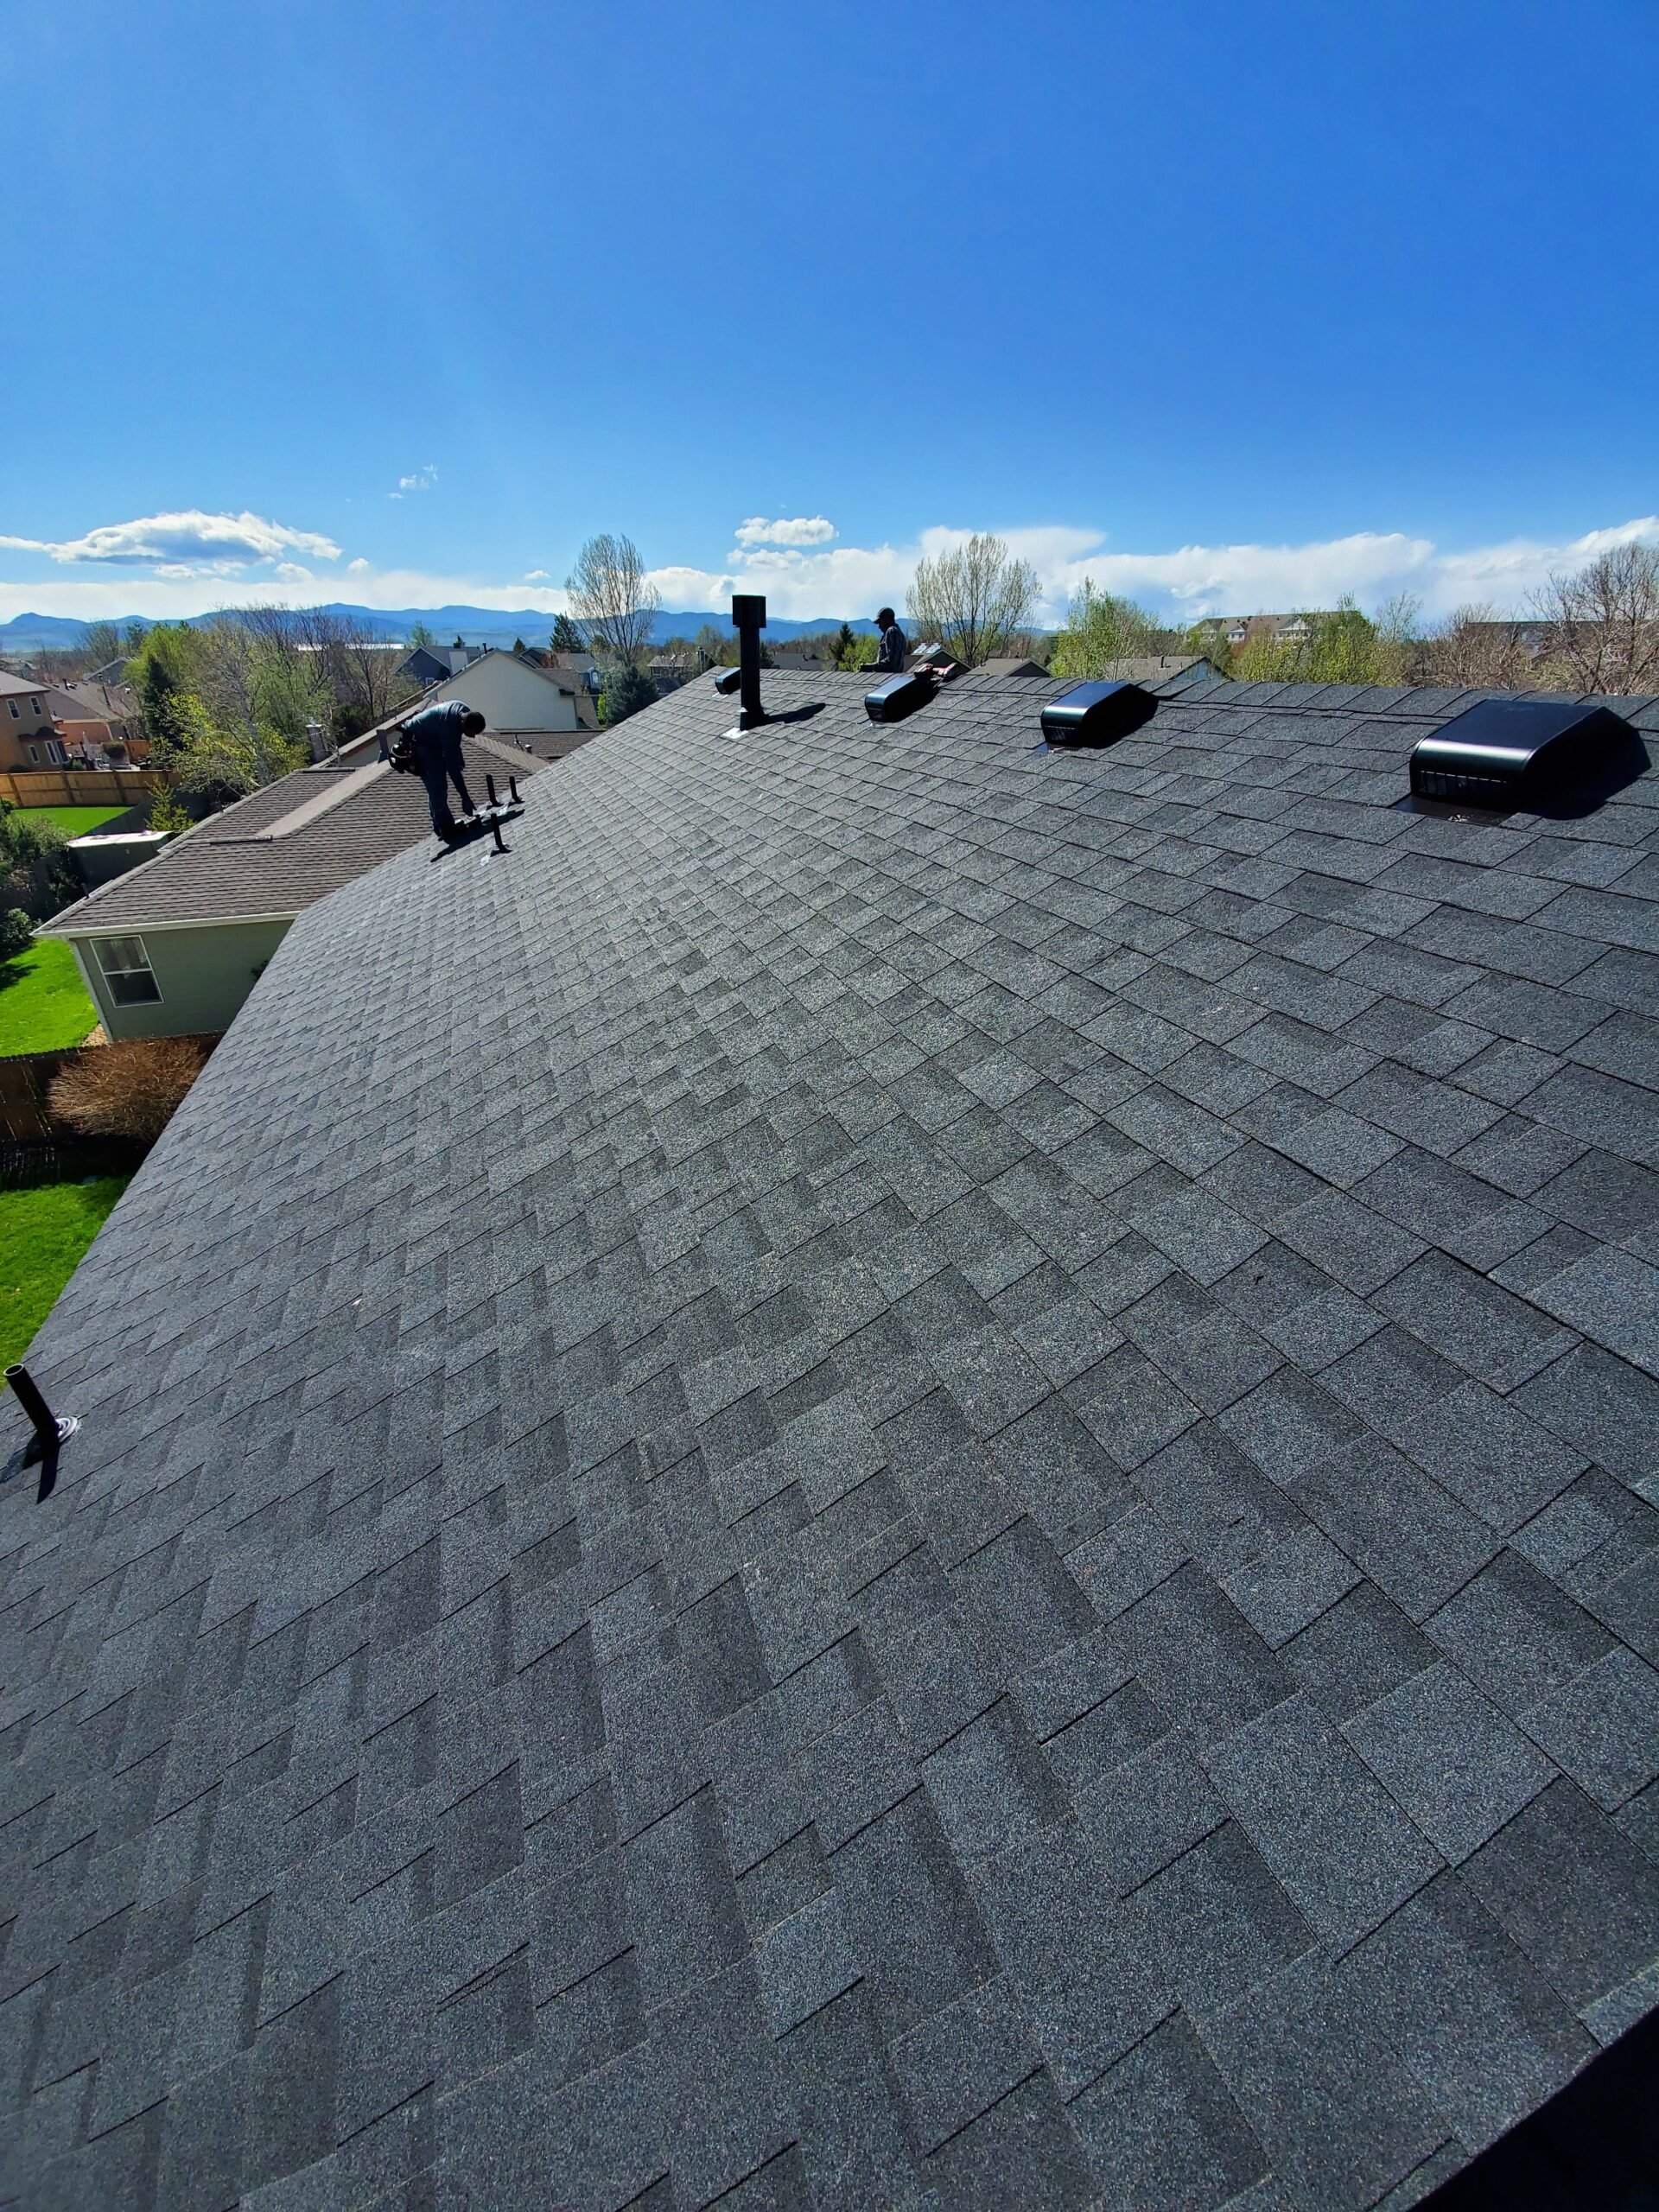 5 Important Residential Roofing Tips for Homeowners